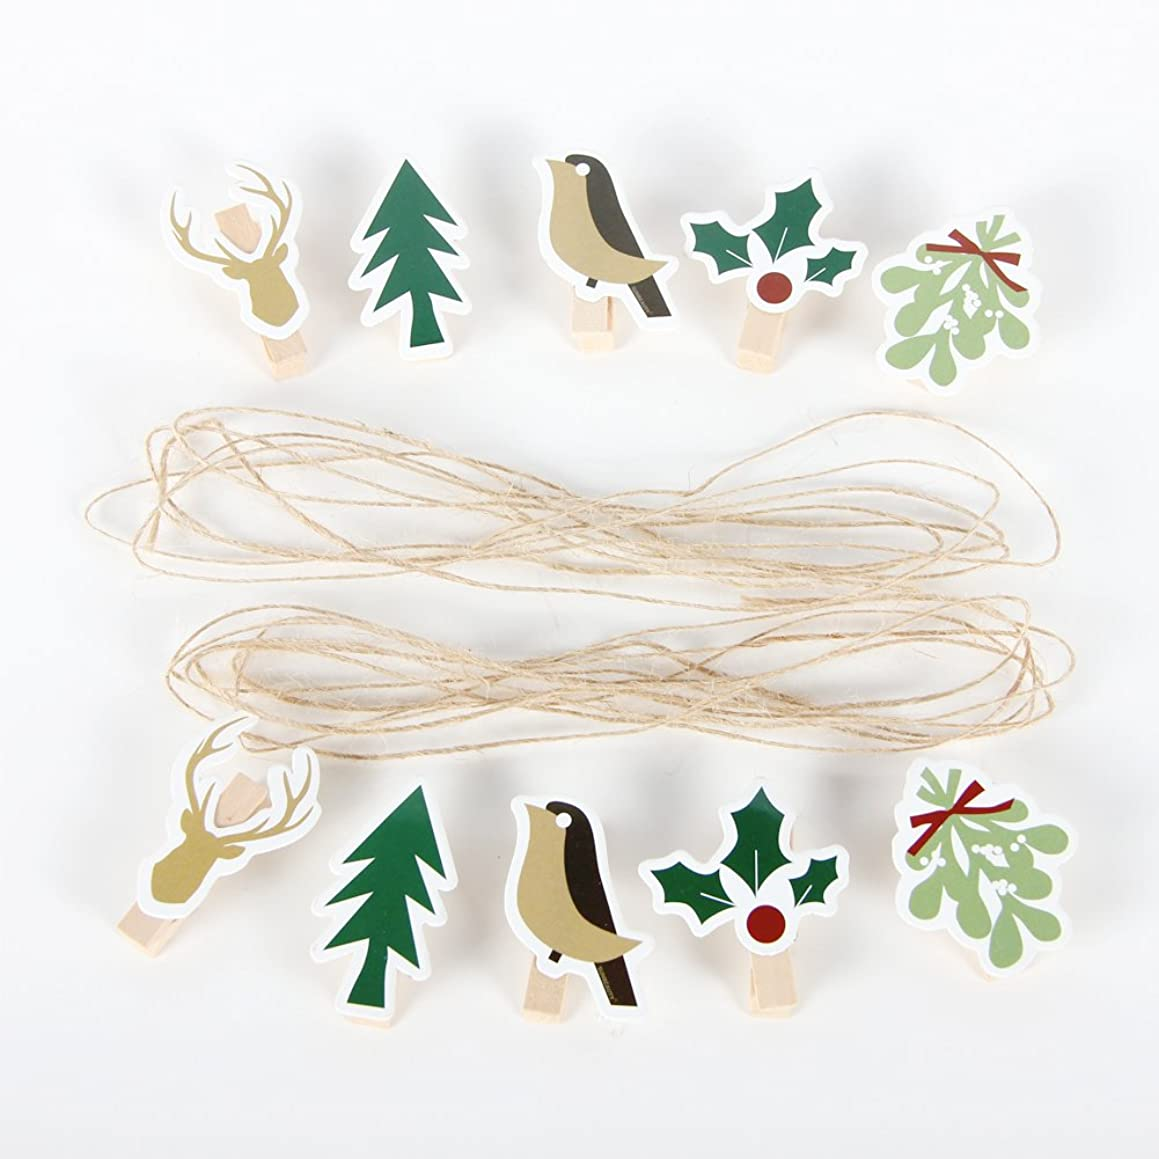 PAPER JAZZ Christmas Wooden Clips picture card hanger Garland Burlap Bunting Banner Xmas Holiday Party Props Fireplace Decorations